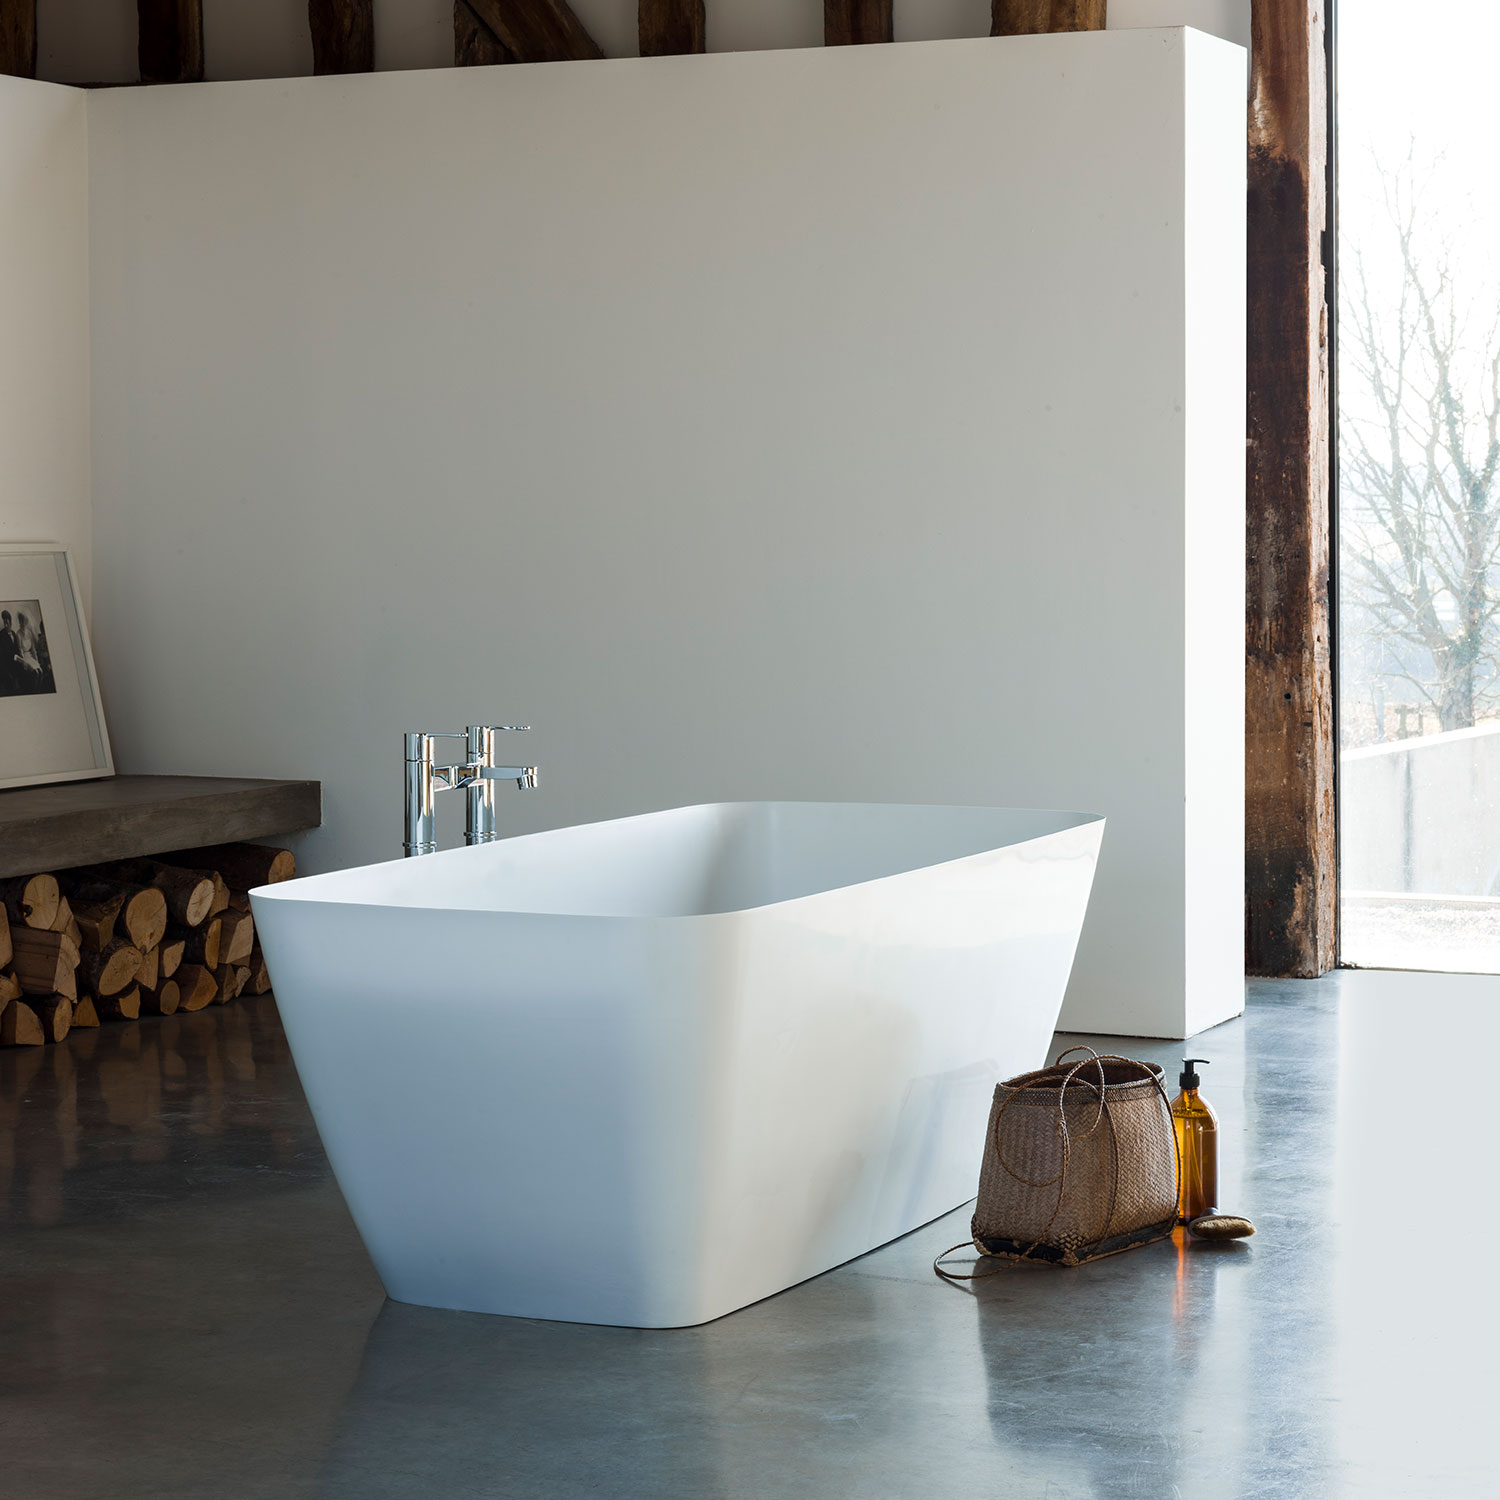 Clearwater Vicenza Petite Freestanding Bath 1524mm x 800mm - Clear Stone